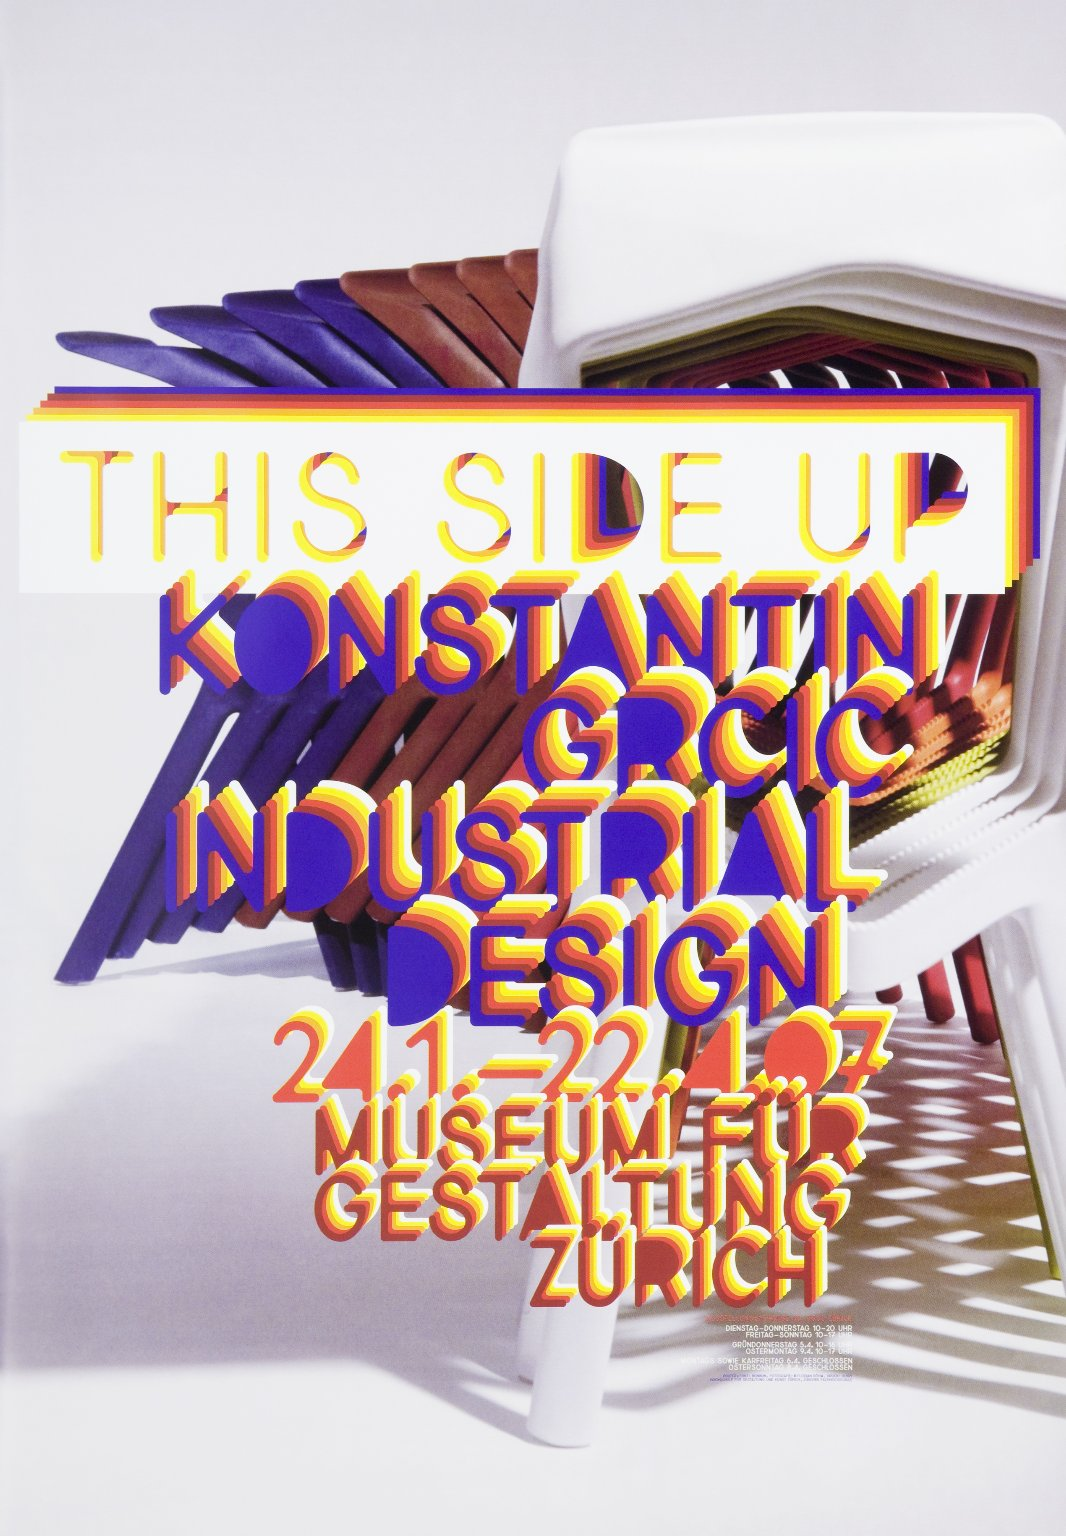 This Side Up - Konstantin Grcic Industrial Design